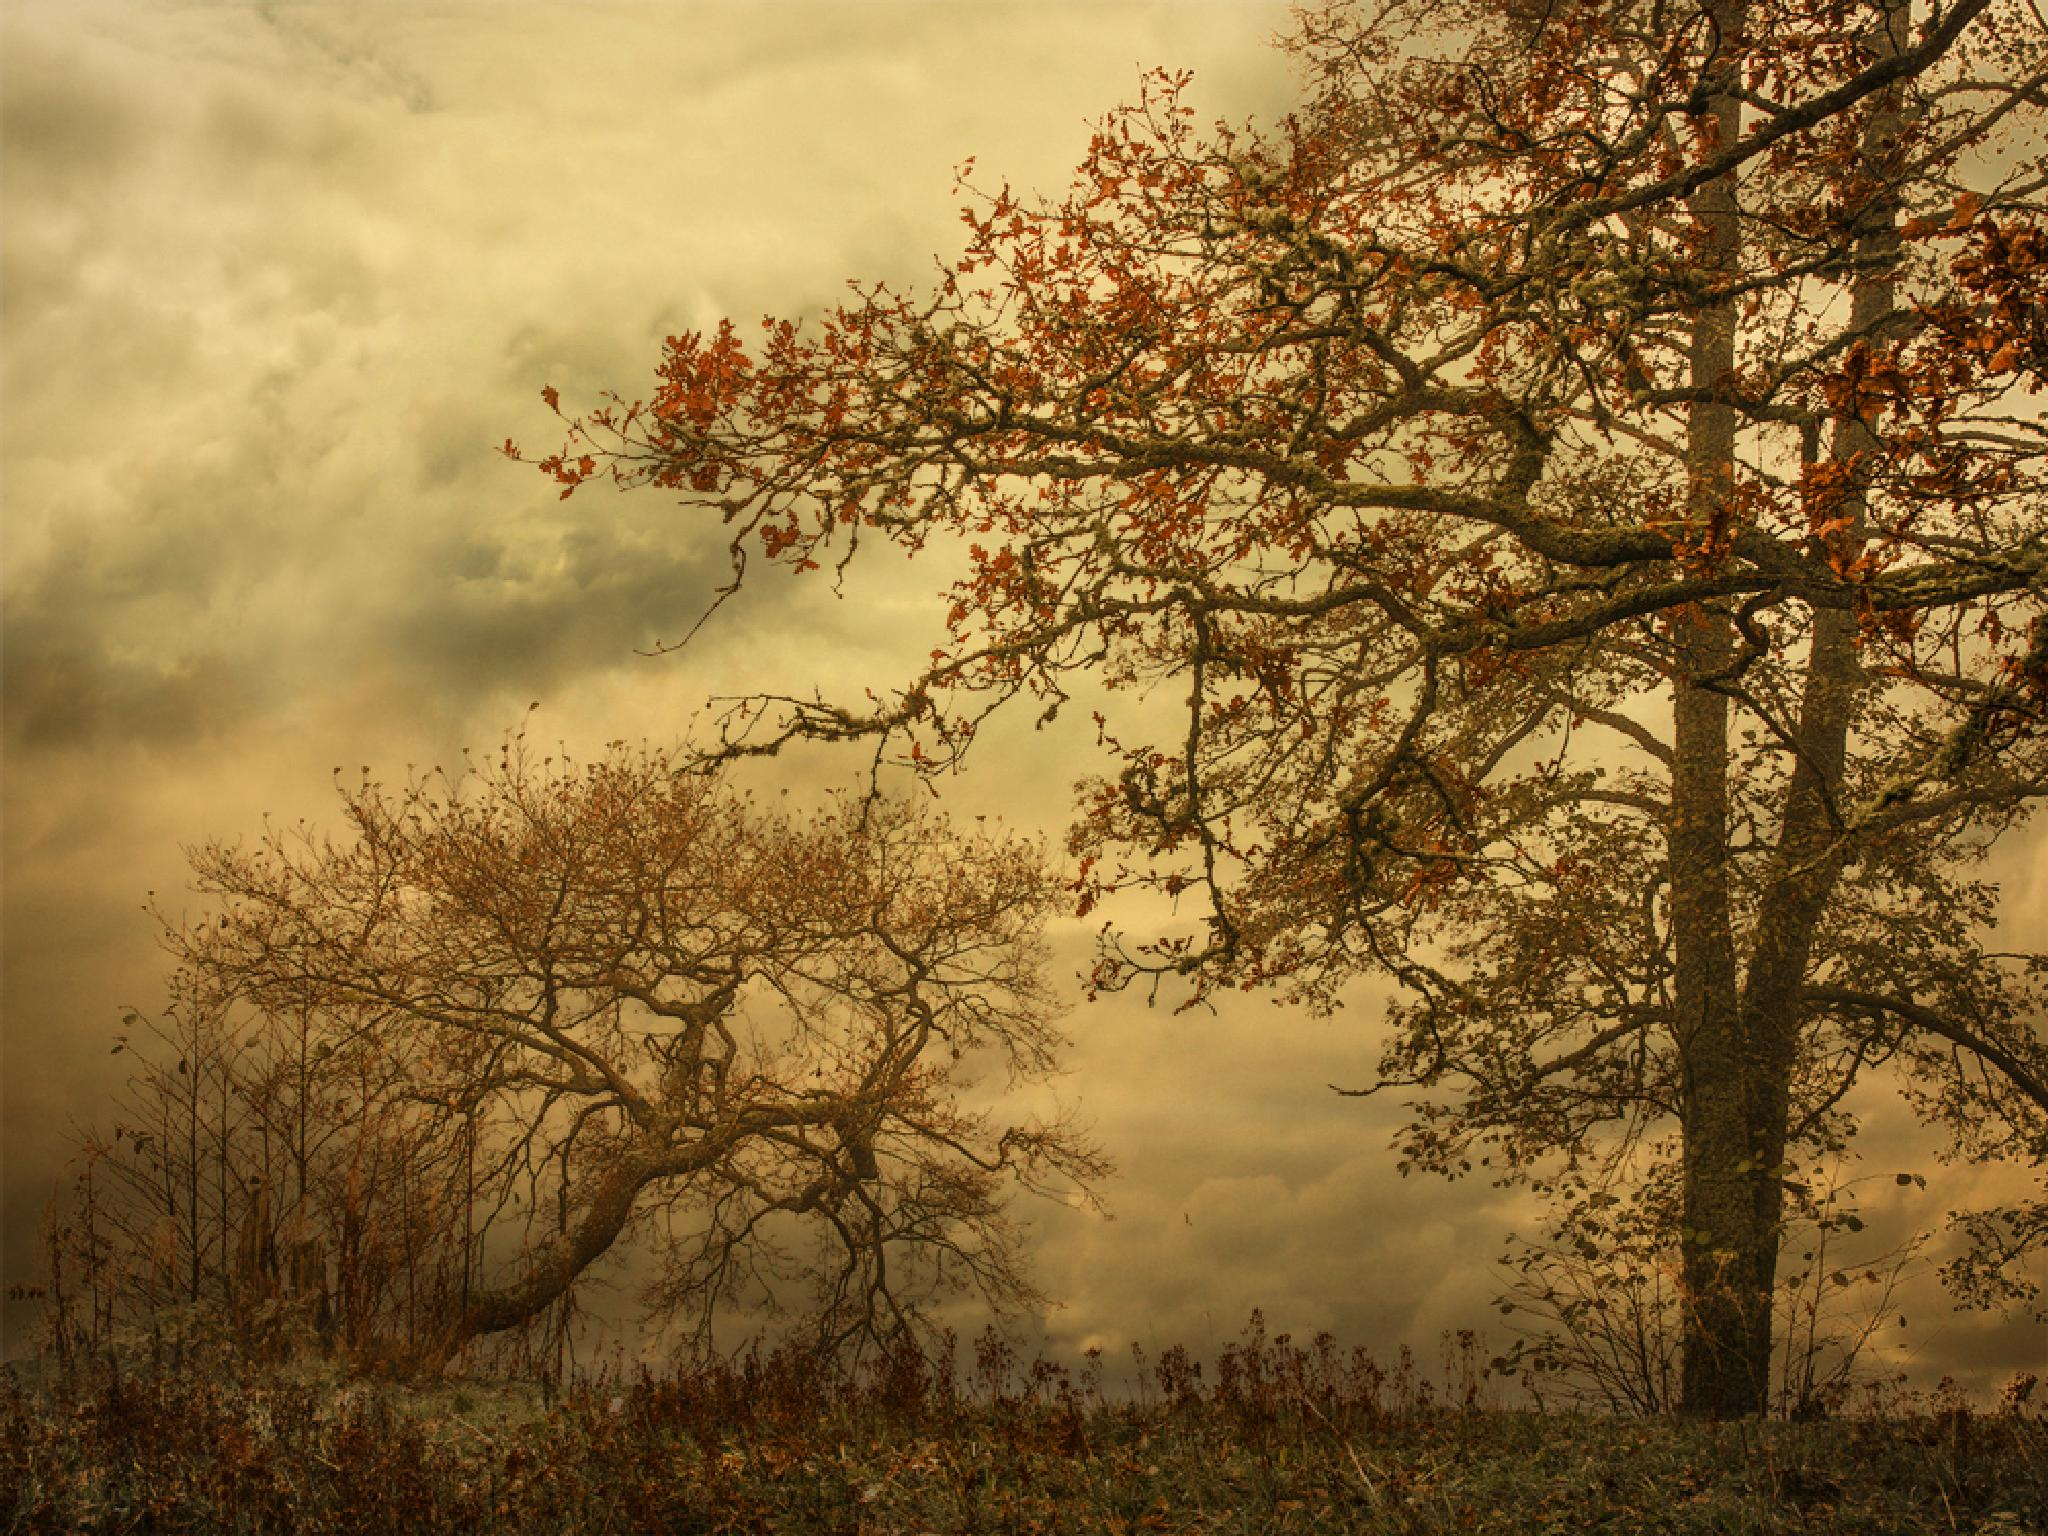 Trees by Peter Samuelsson